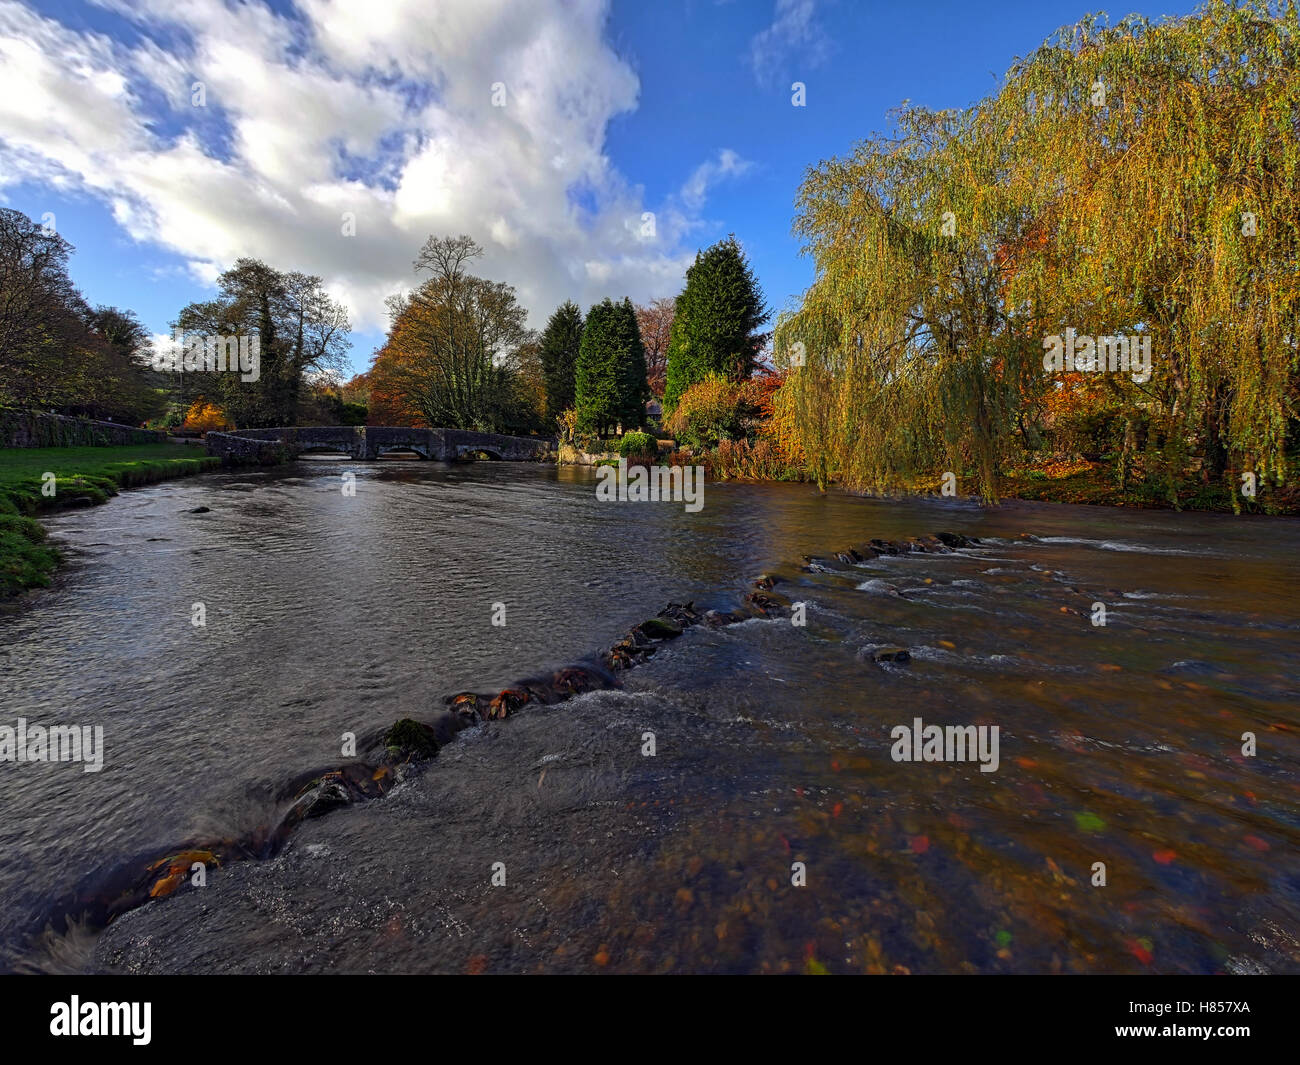 Ashford on the Water, Near Bakewell, Derbyshire, UK. 10th November, 2016. UK Weather Autumnal colours on the trees Stock Photo